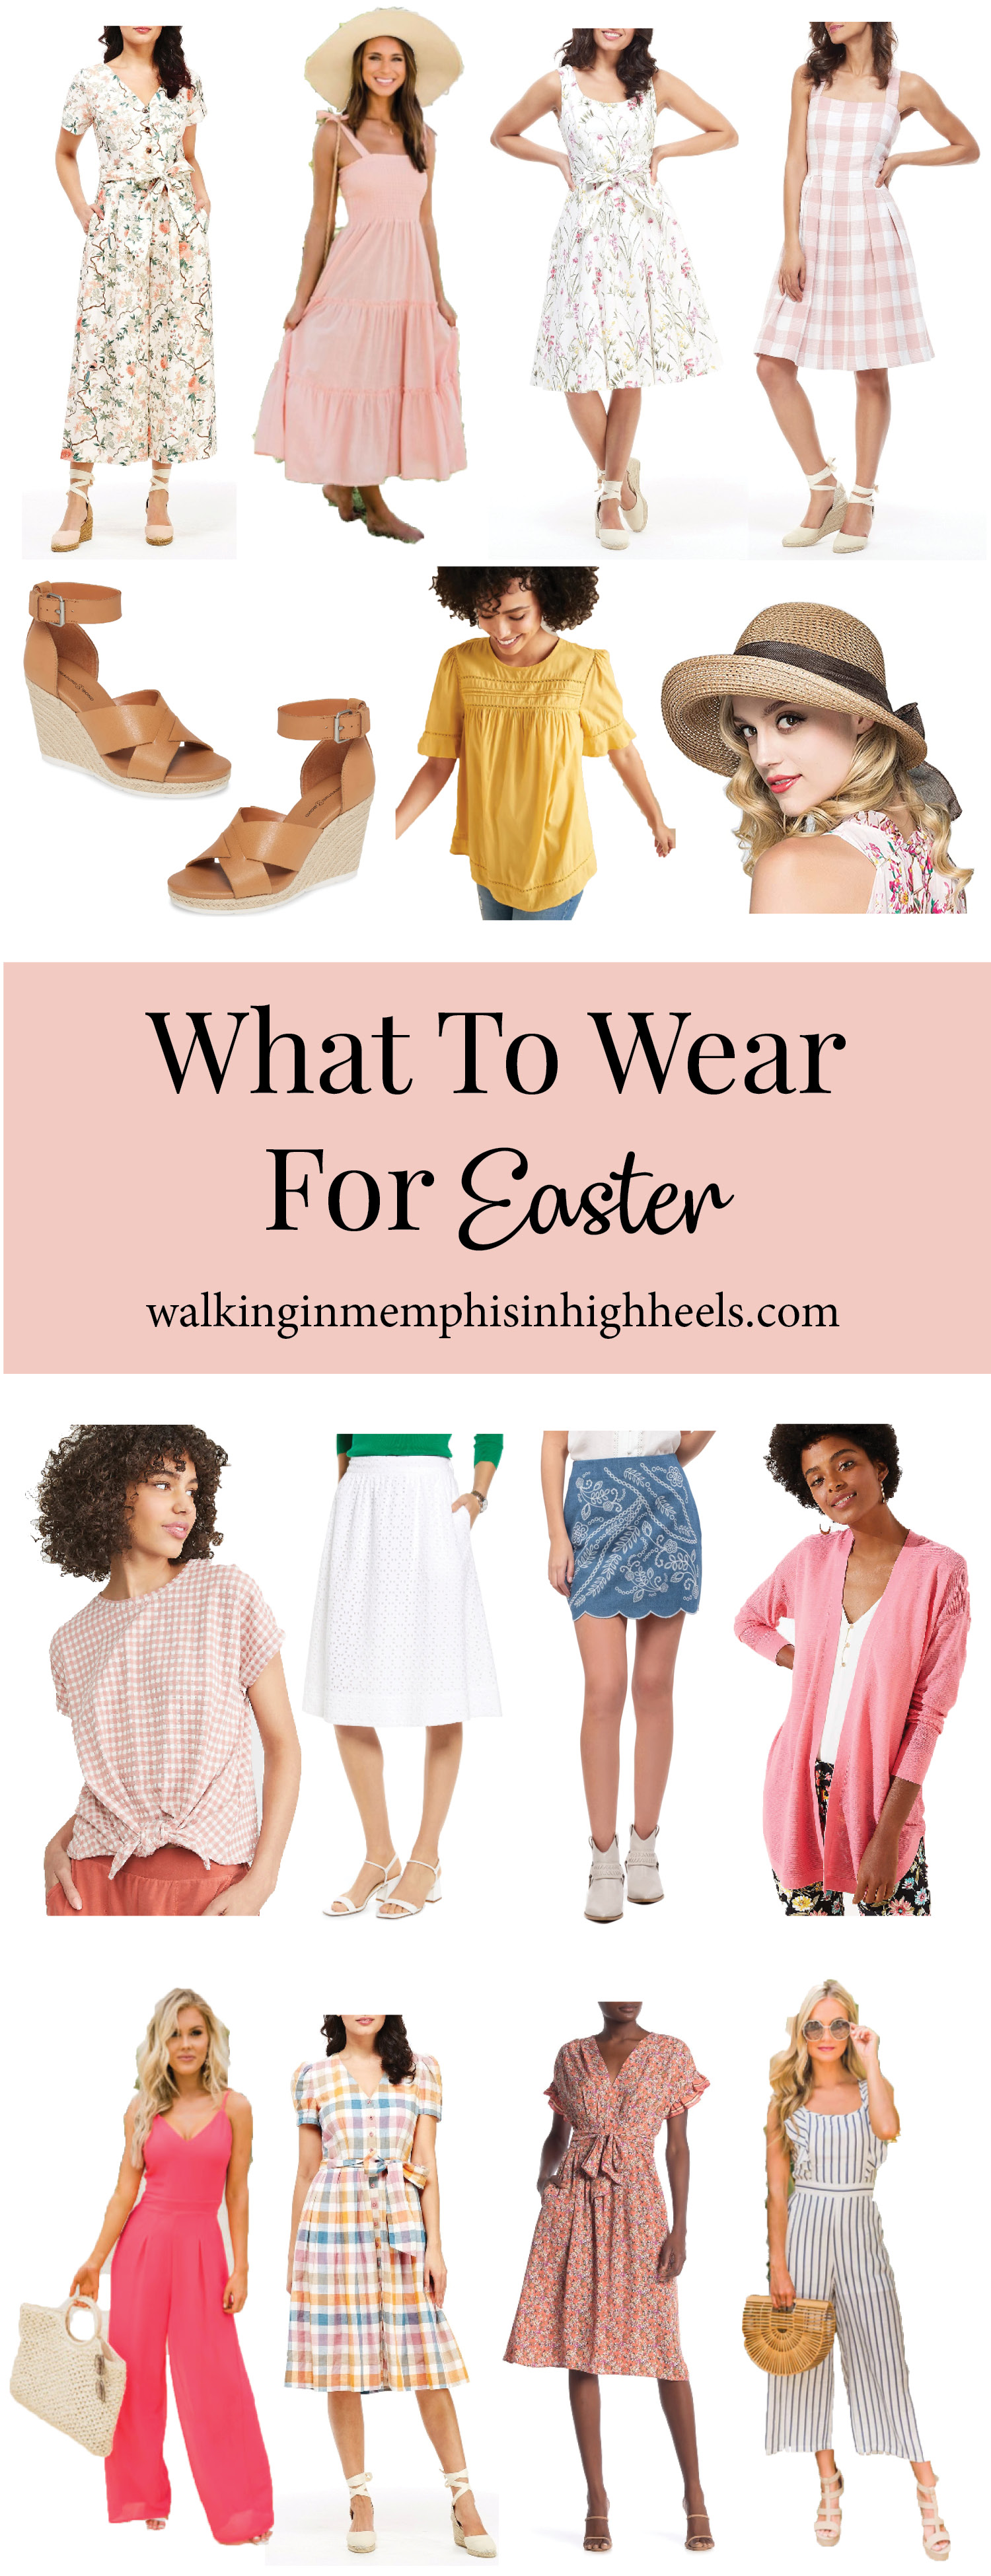 What to Wear for Easter Pictures